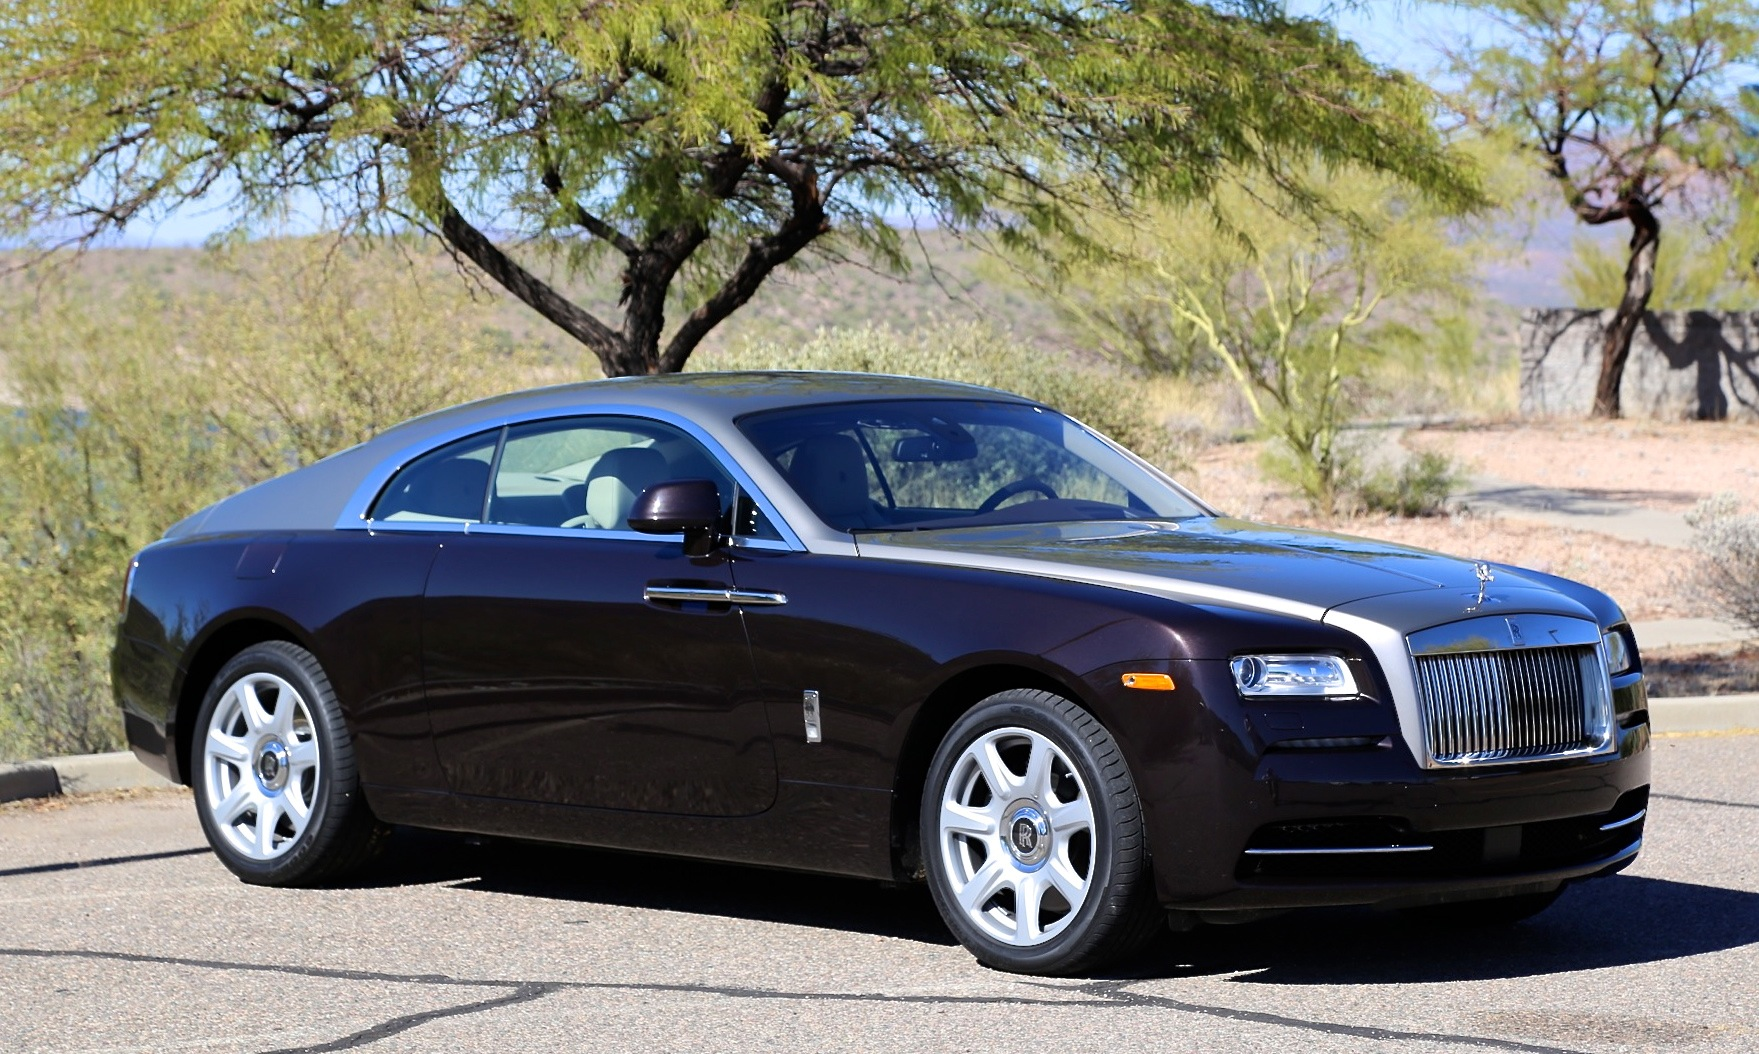 Movie Cars For Sale >> 2014 Rolls-Royce Wraith Review, Ratings, Specs, Prices, and Photos - The Car Connection